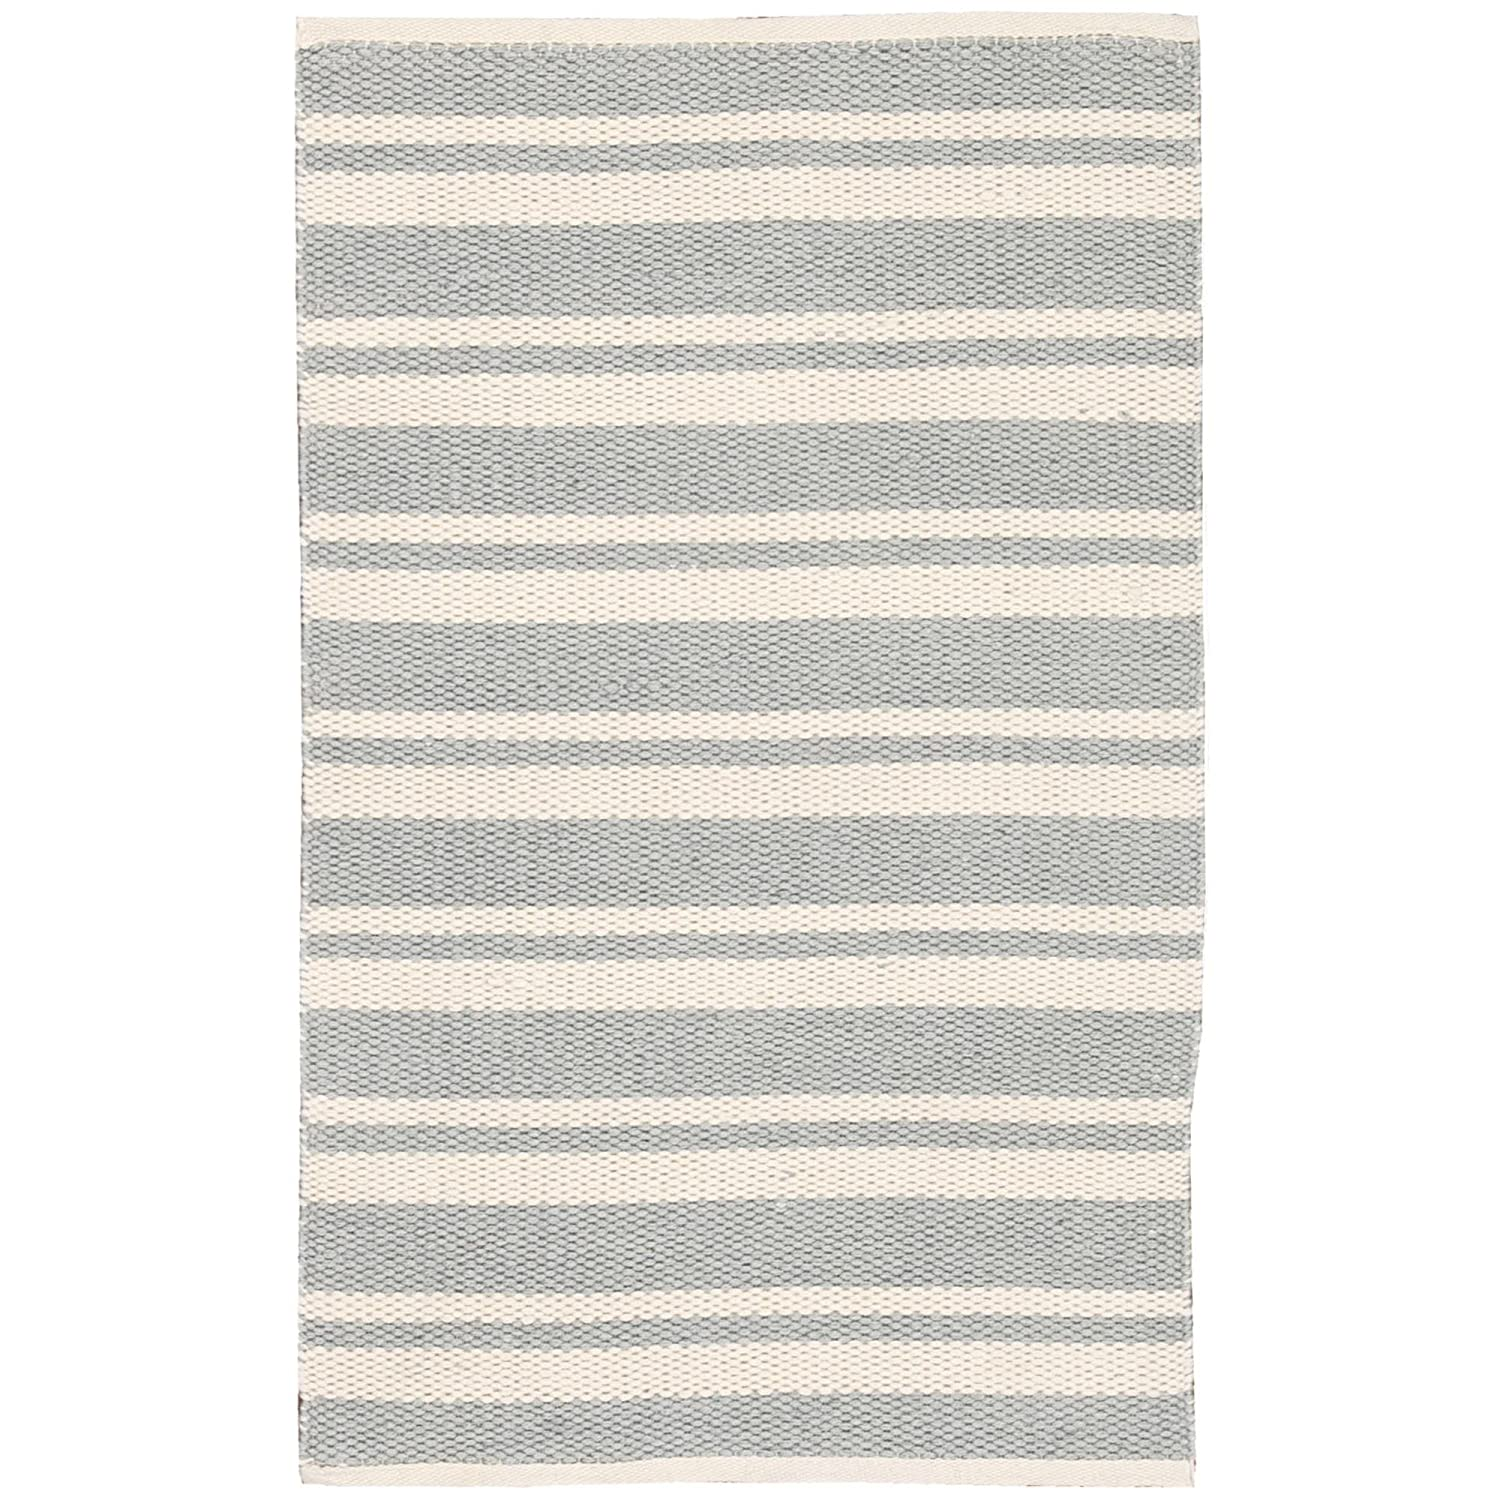 Amazon Com Nourison Mesa Mes17 Tan Rectangle Area Rug  Inches By  Inches  Kitchen Dining